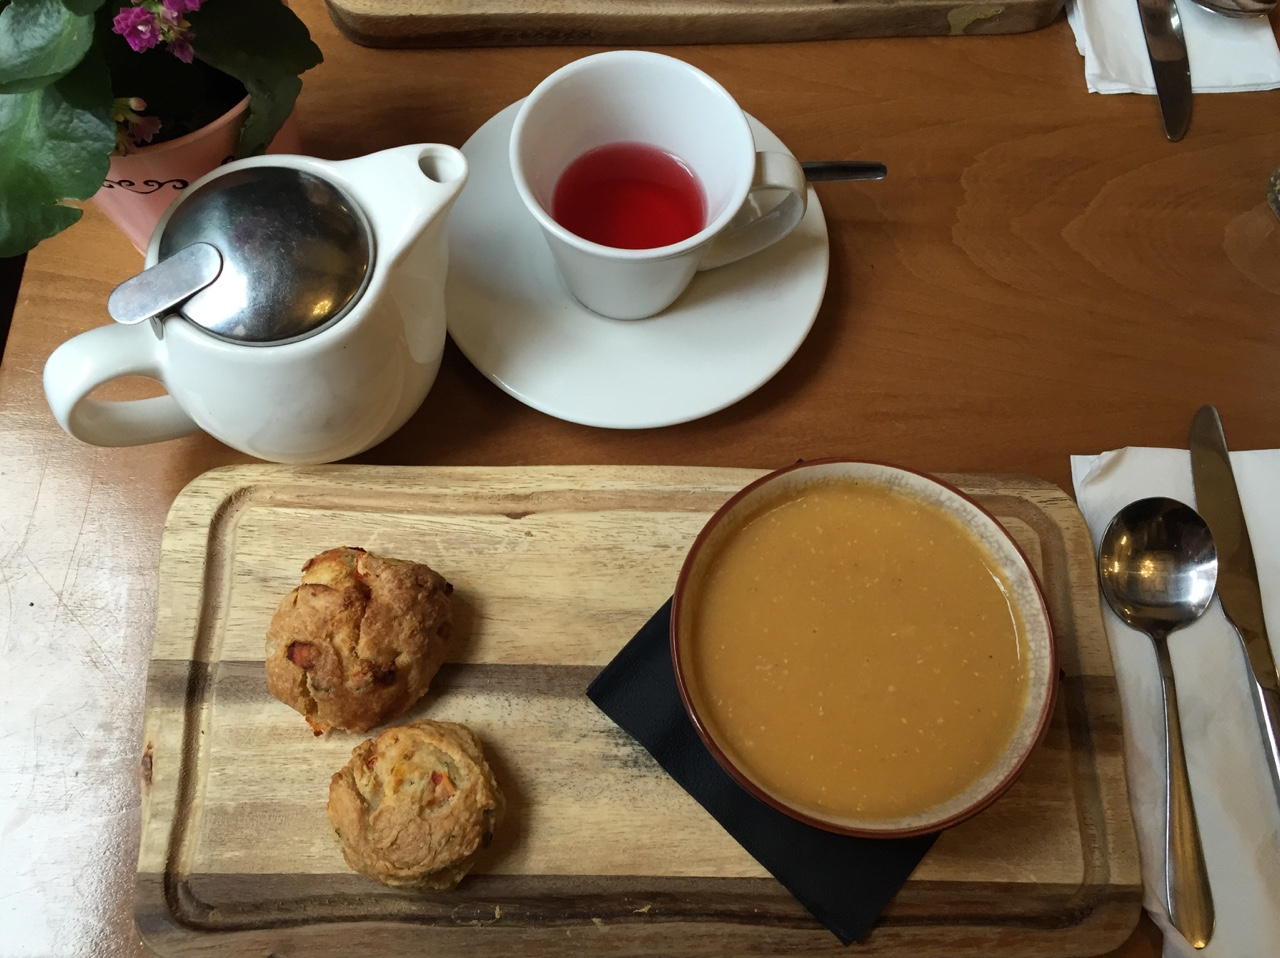 Afternoon Tea & Soup Perfect lunch in Cup Tea Lounge in Glasgow- Ham & Lentil Soup with Tomato and Cheese Scones and a Tea Delight Tea from their on going tea selection. //SHE